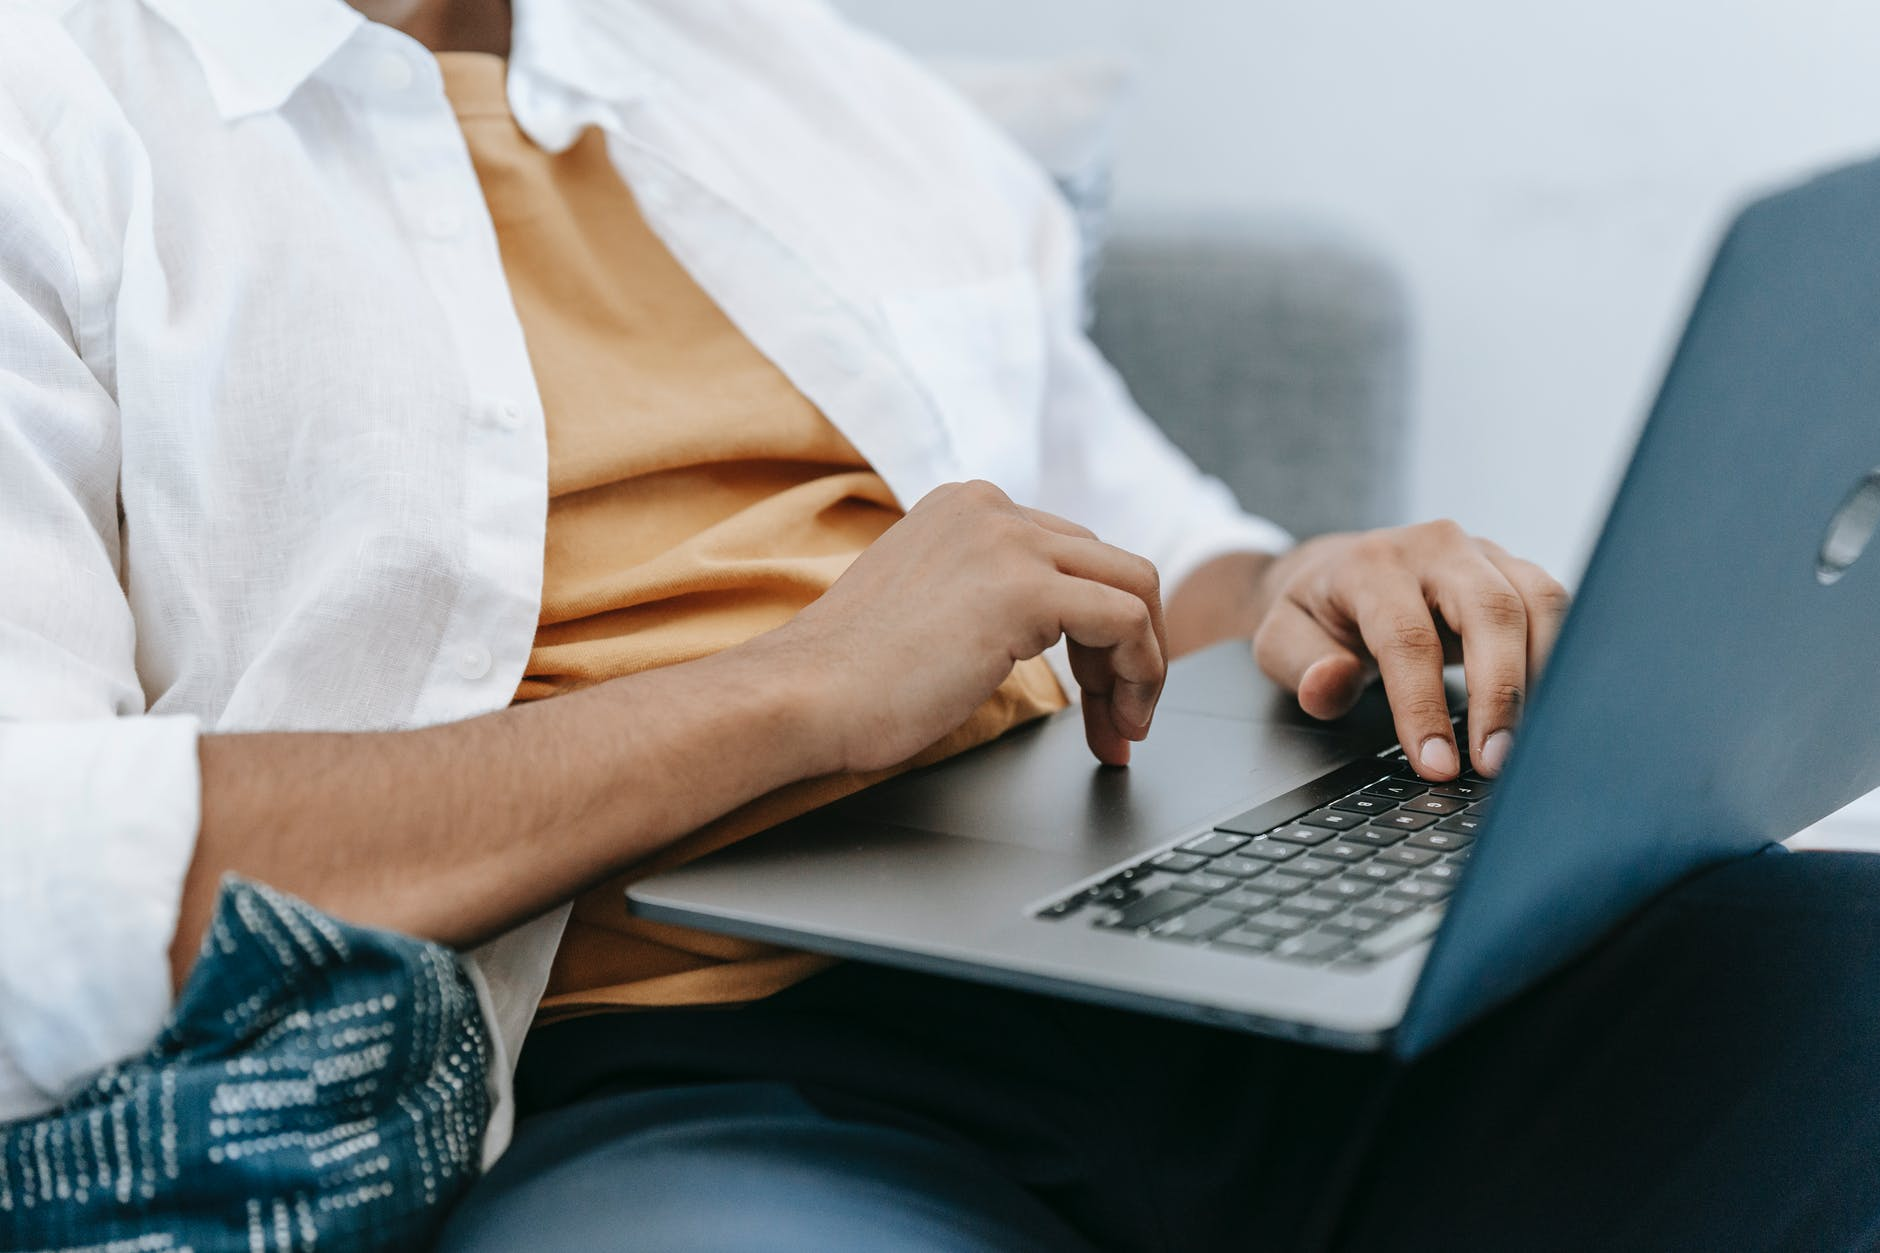 crop remote employee typing on laptop at home